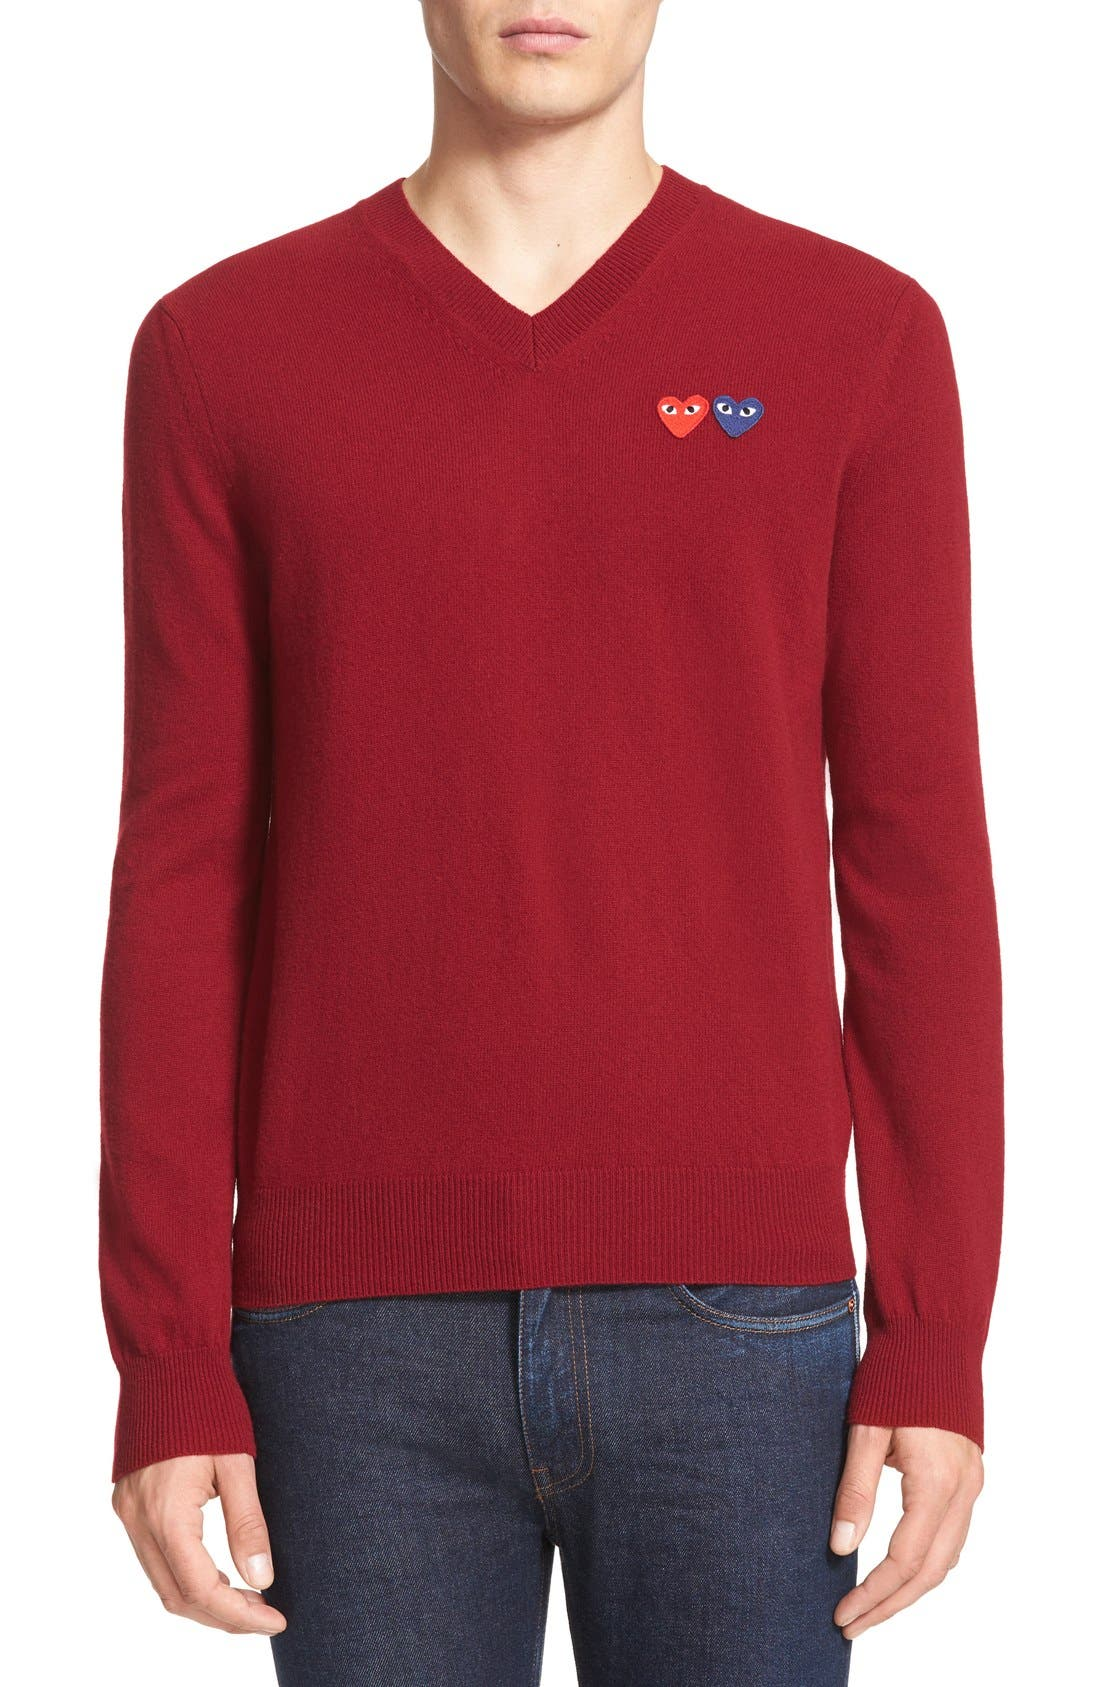 Men's Red Sweaters Designer Clothing & Accessories | Nordstrom